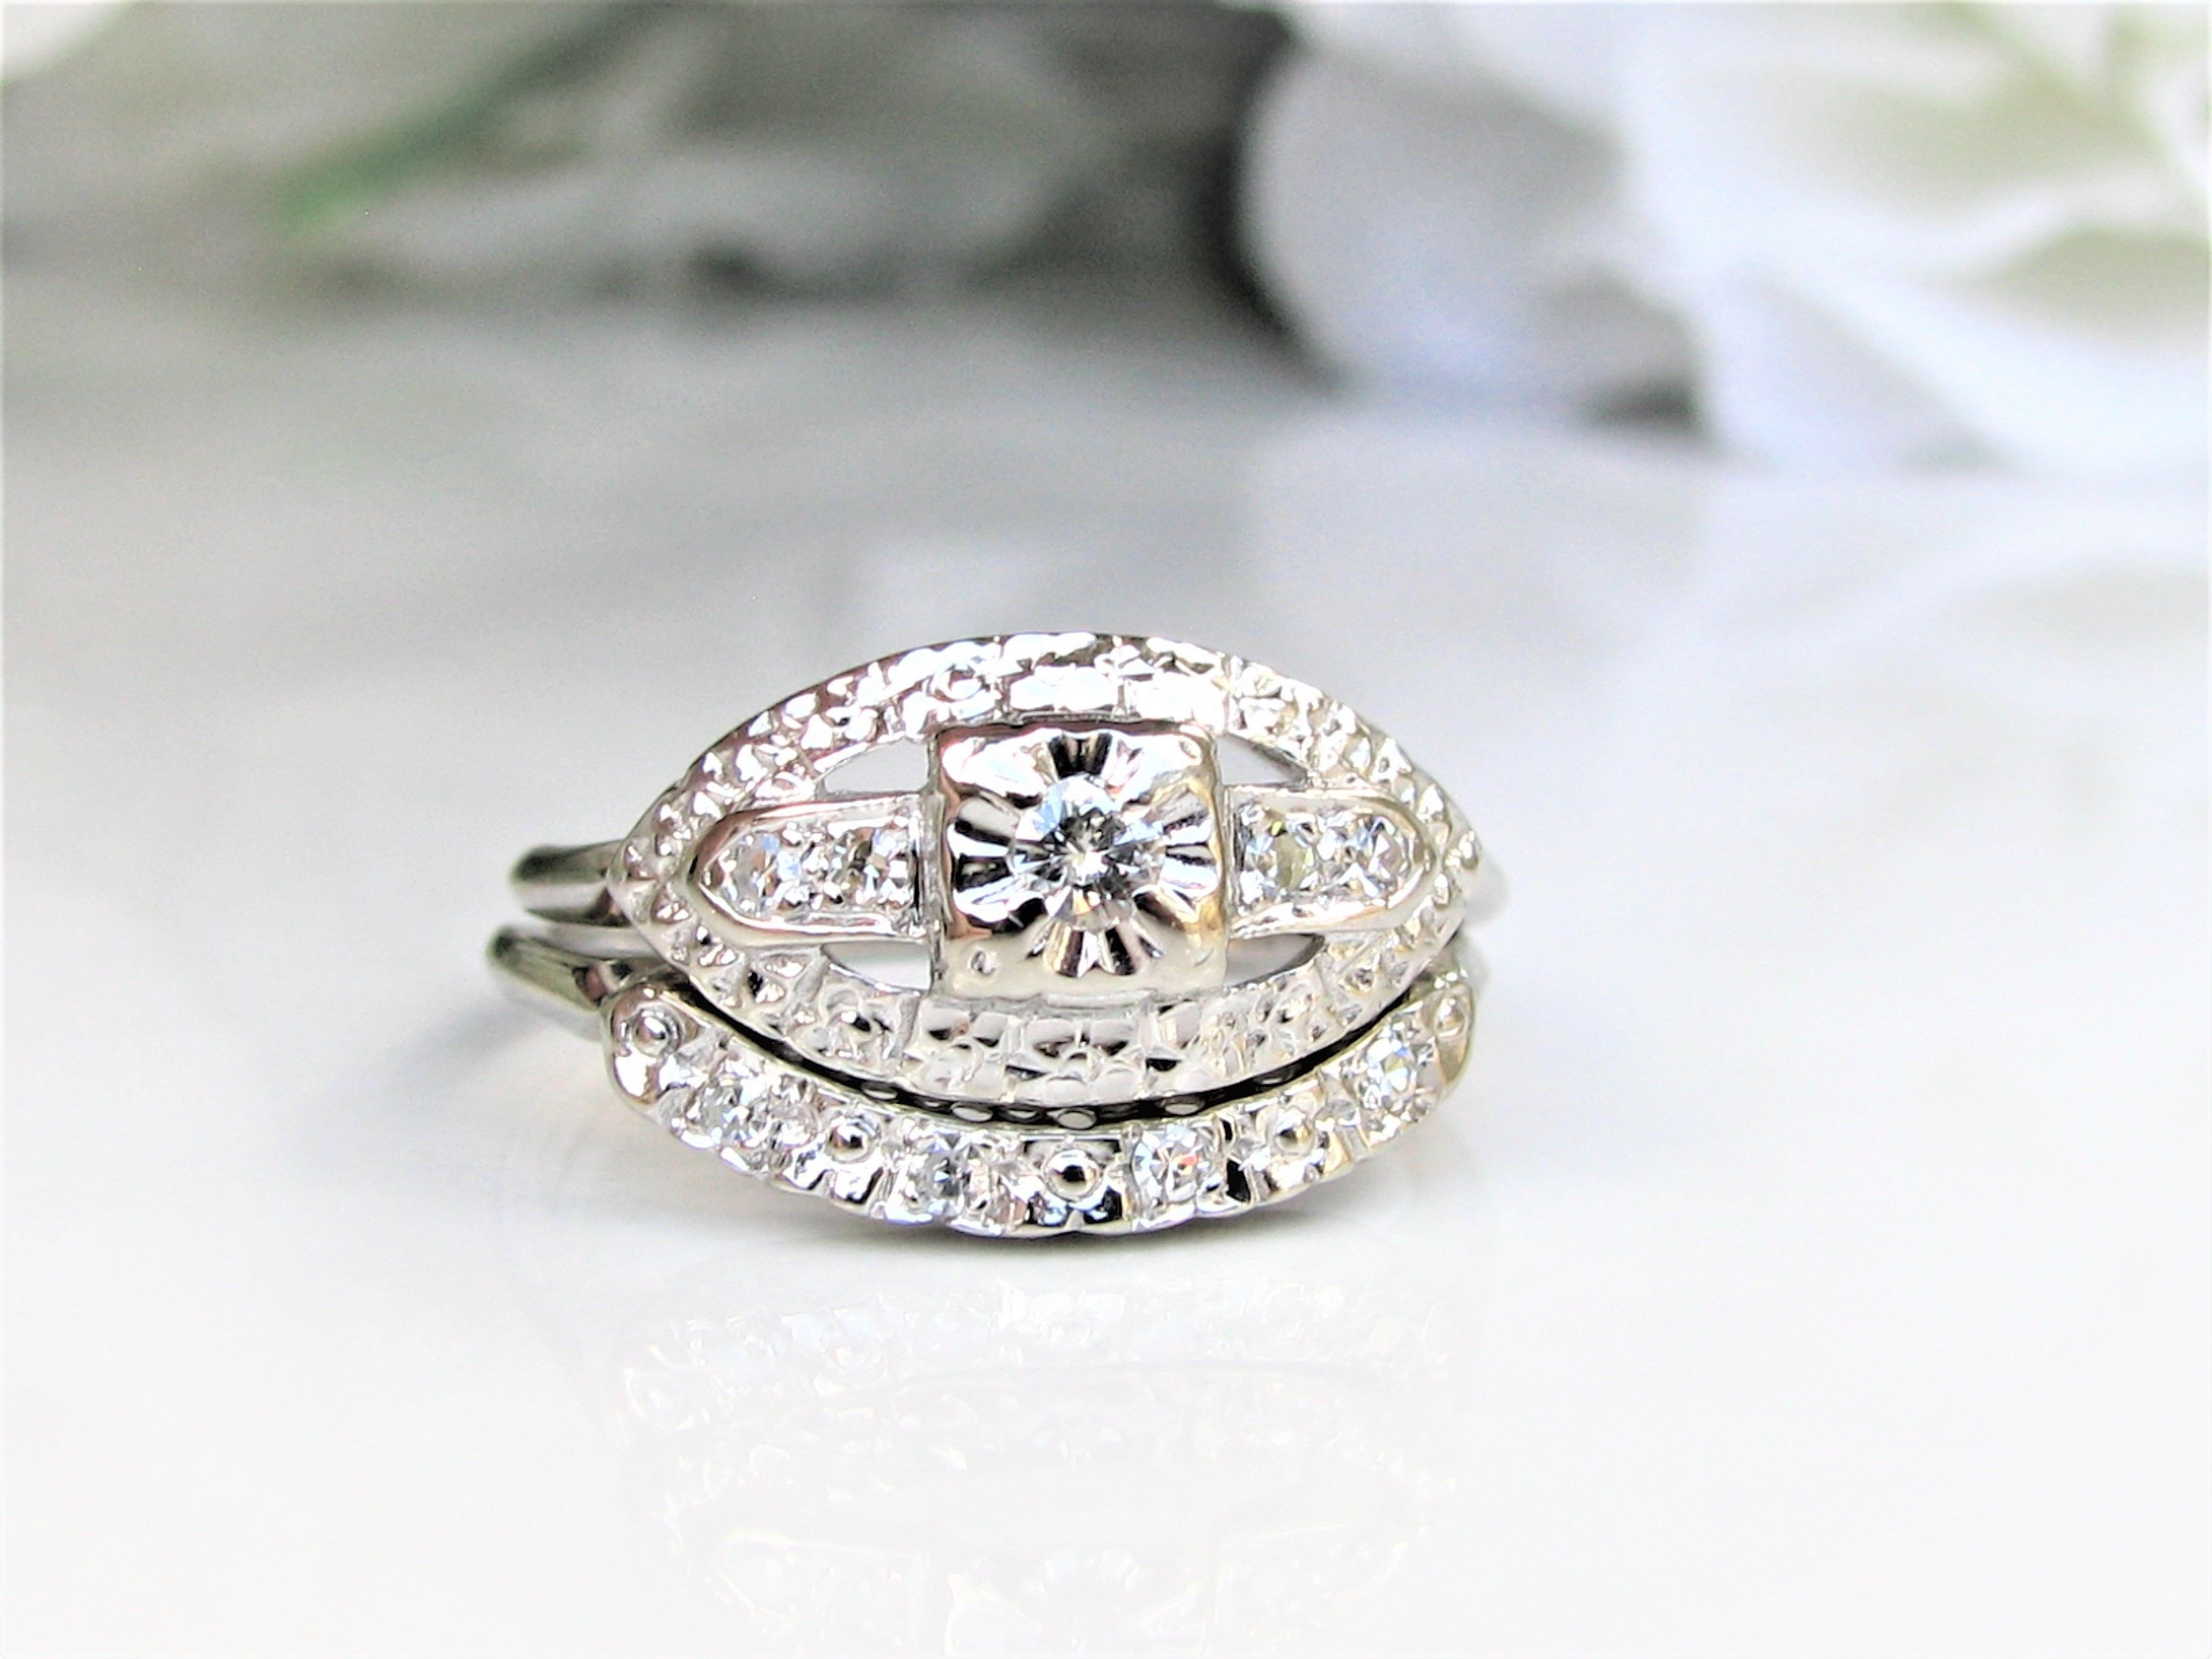 rings rounded parisian claw round brilliant engagement ring diamond solitaire platinum